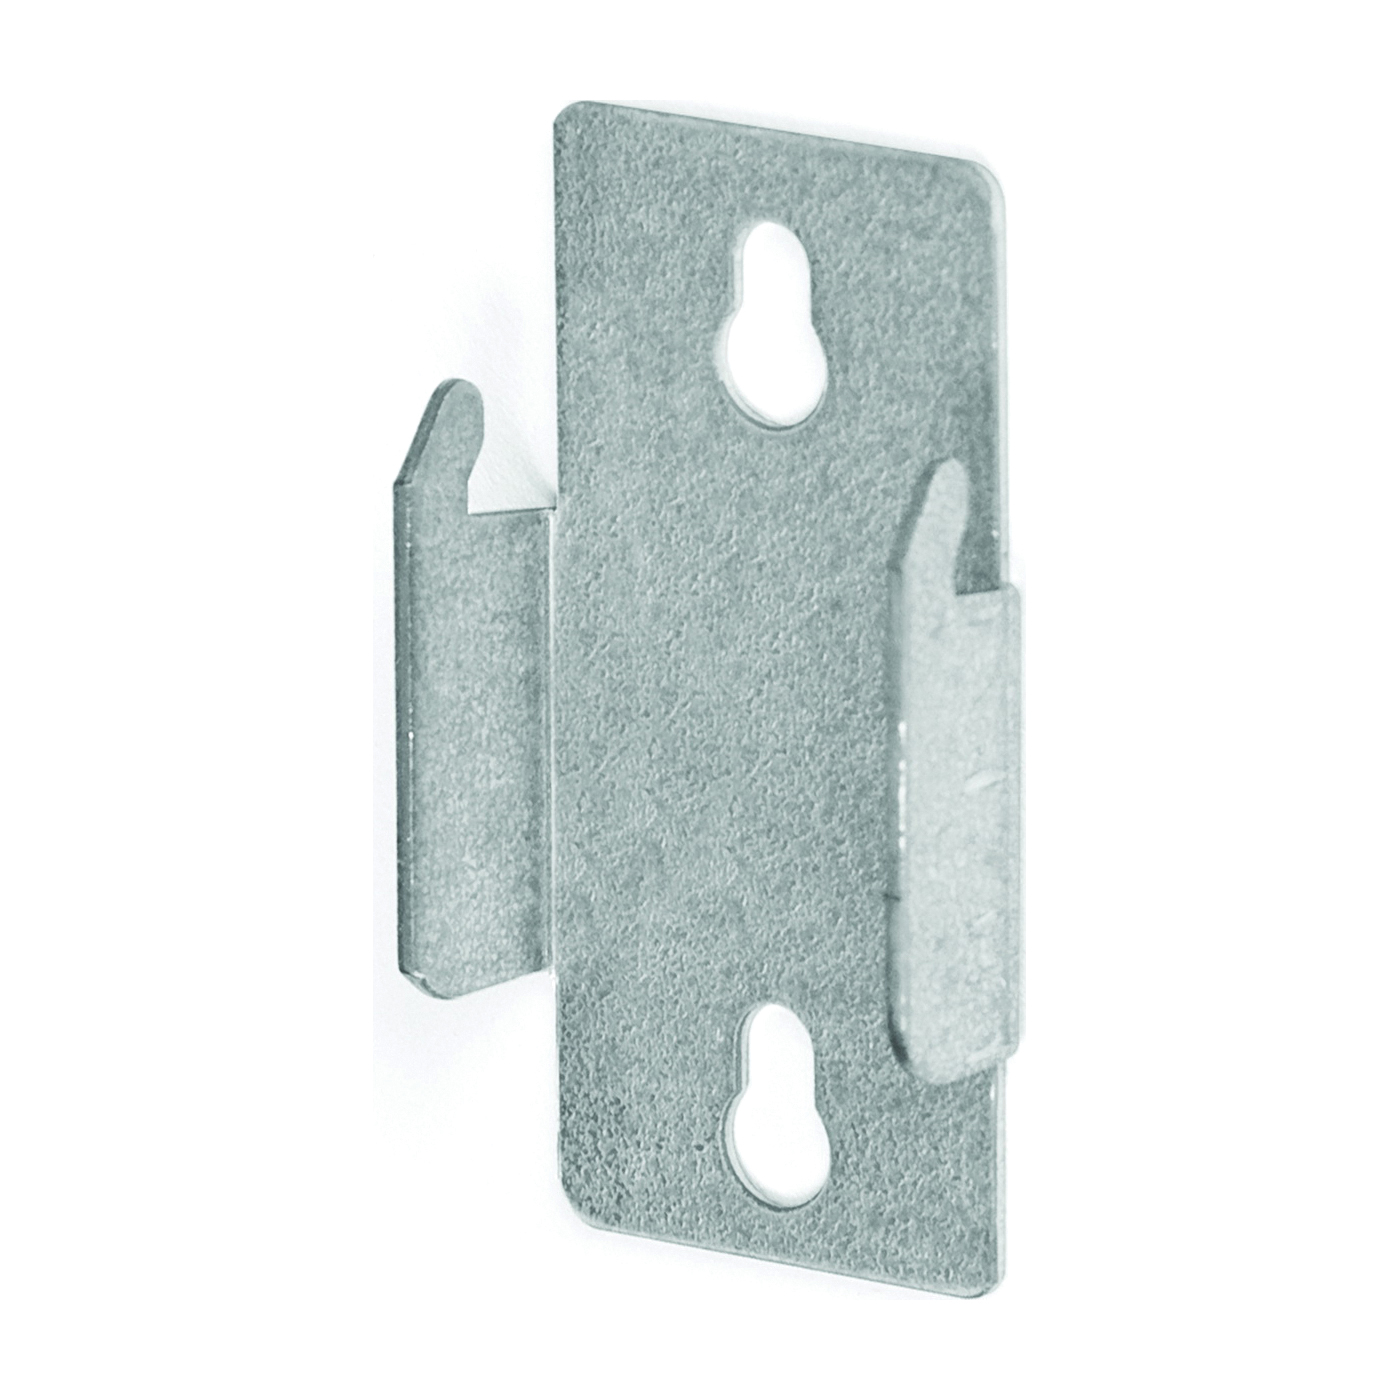 Picture of Kenney KN852 Curtain Rod Bracket, Double, Zinc, Silver, Nail Mounting, 2